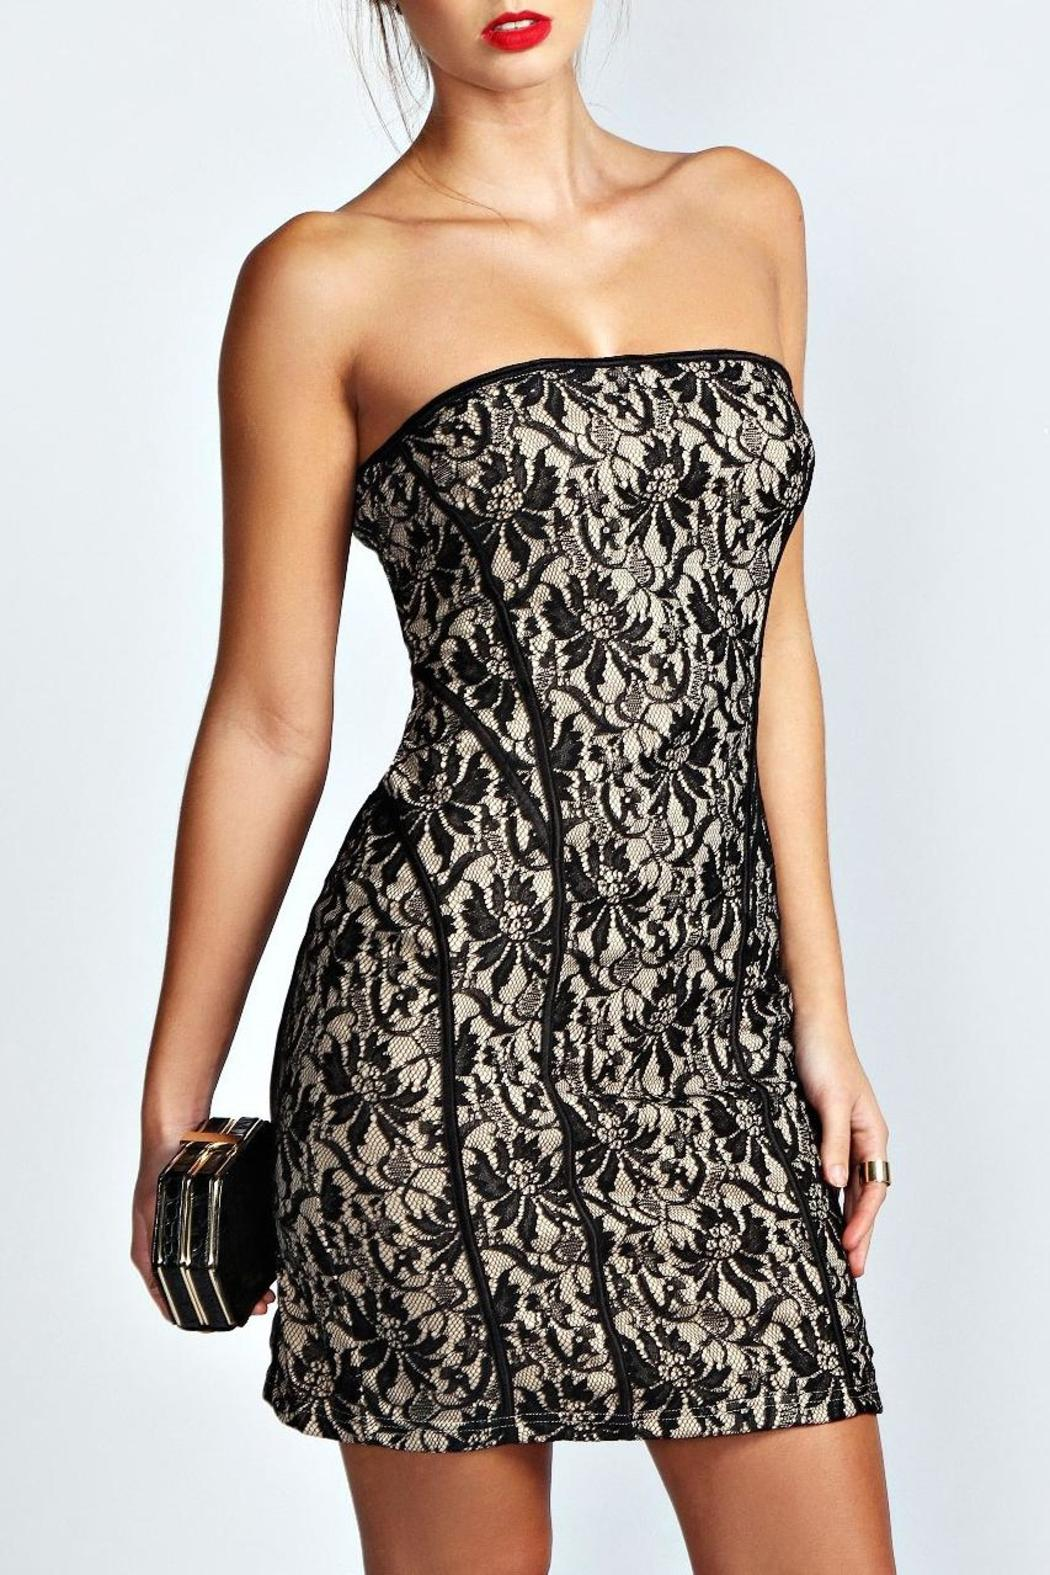 Adore Clothes & More Black Nude Dress - Main Image